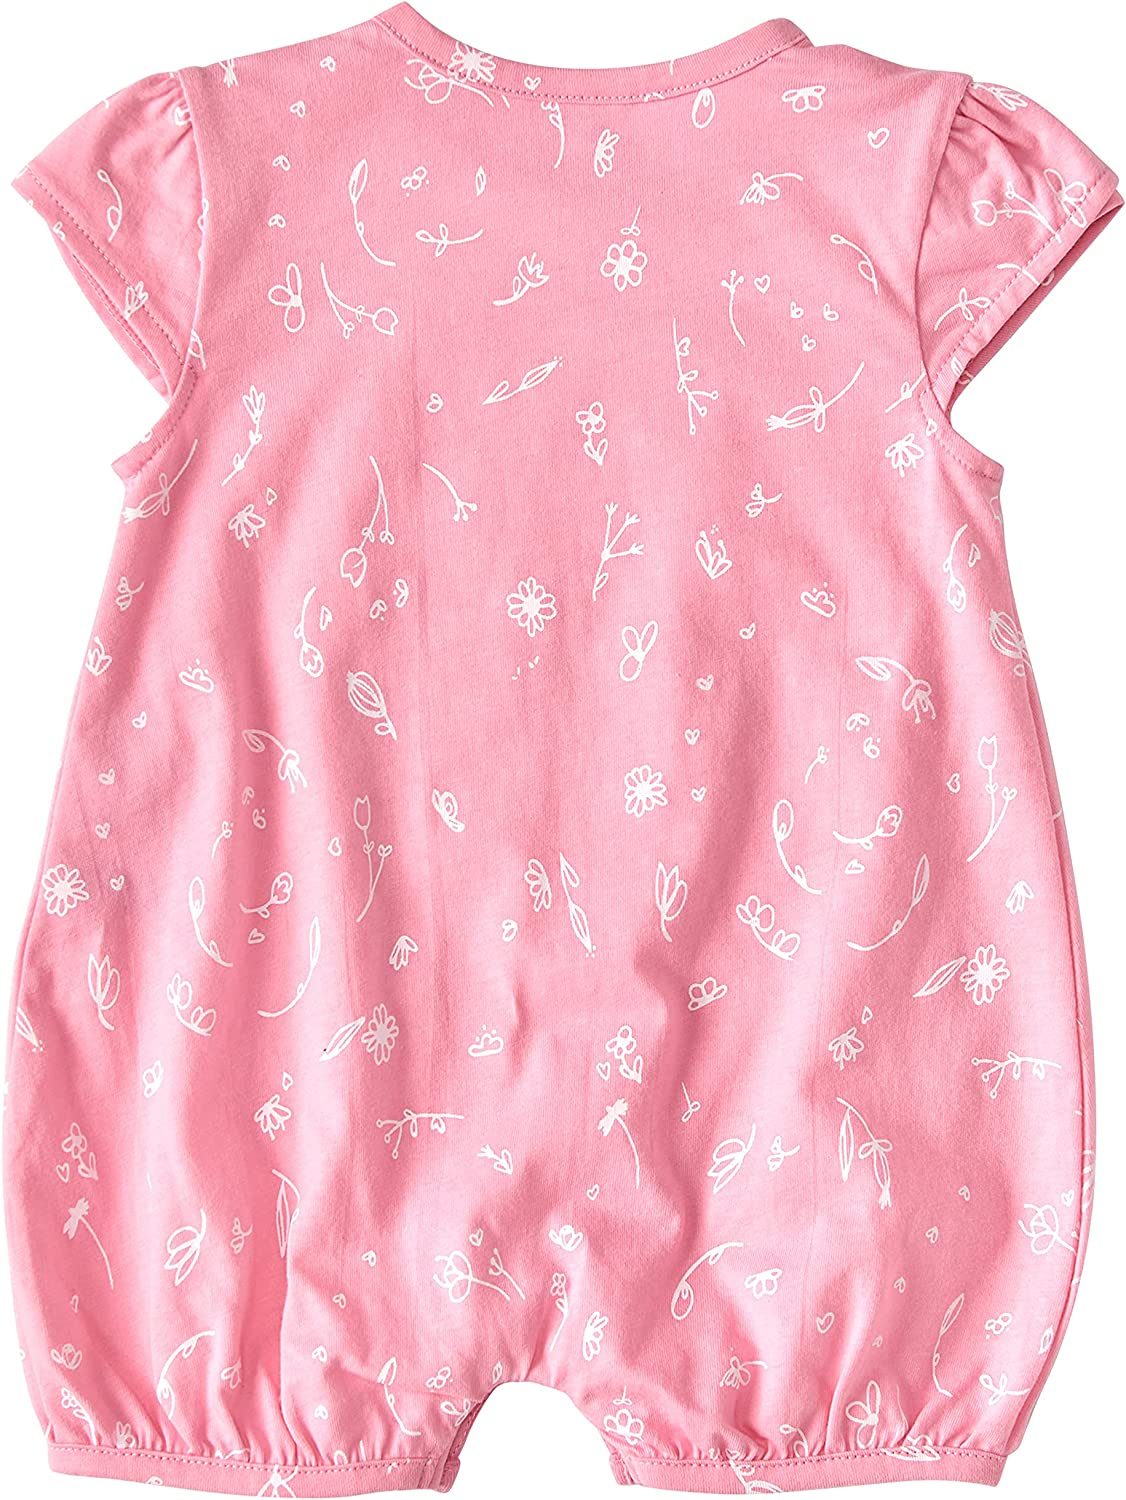 adidas Baby Girls' National products Short Romper Shortie Printed Max 51% OFF Sleeve